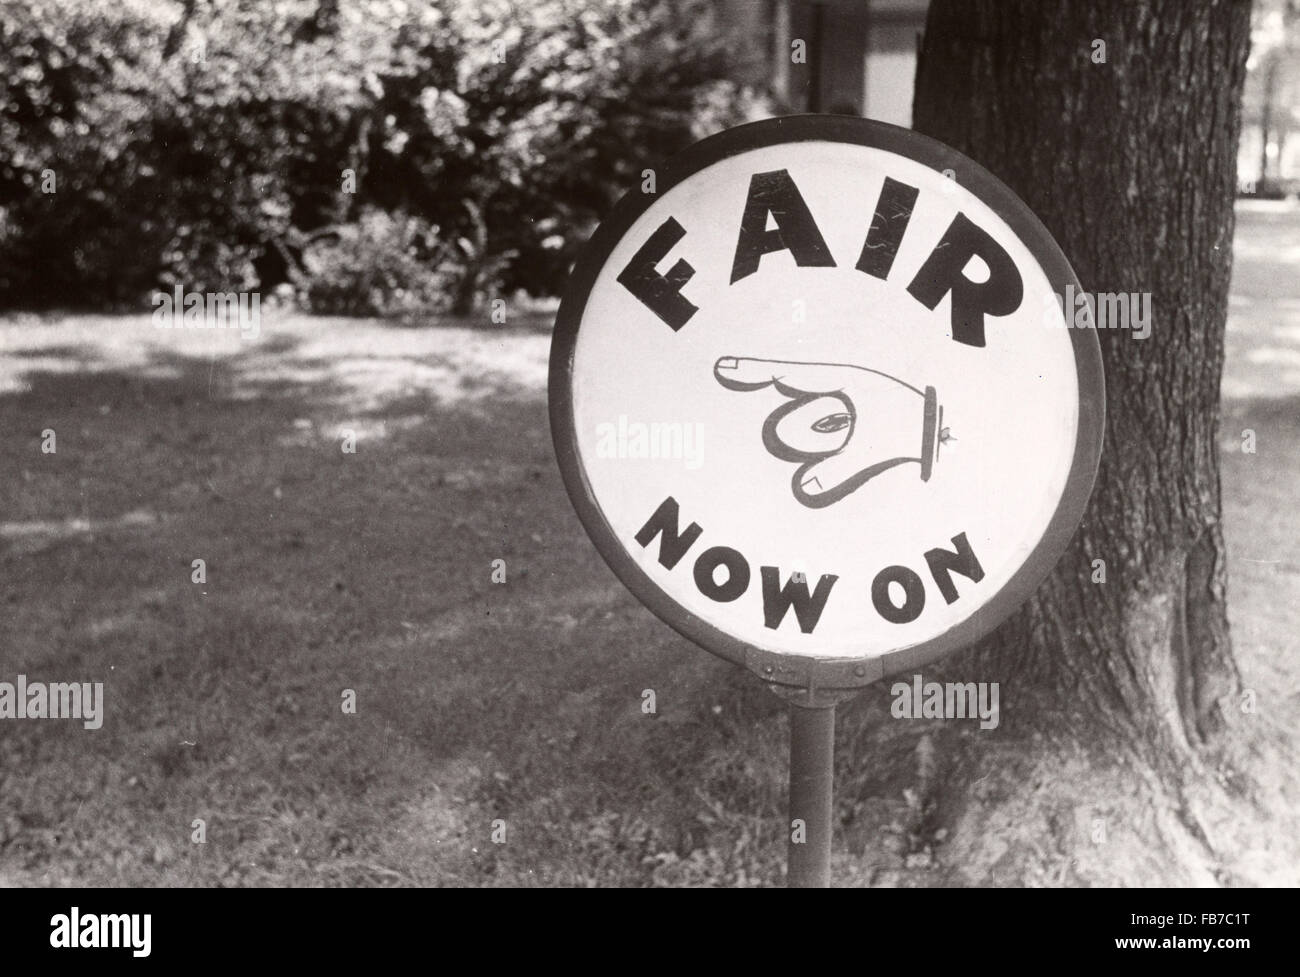 Sign advertising county fair, central Ohio, America, 1930's - Stock Image